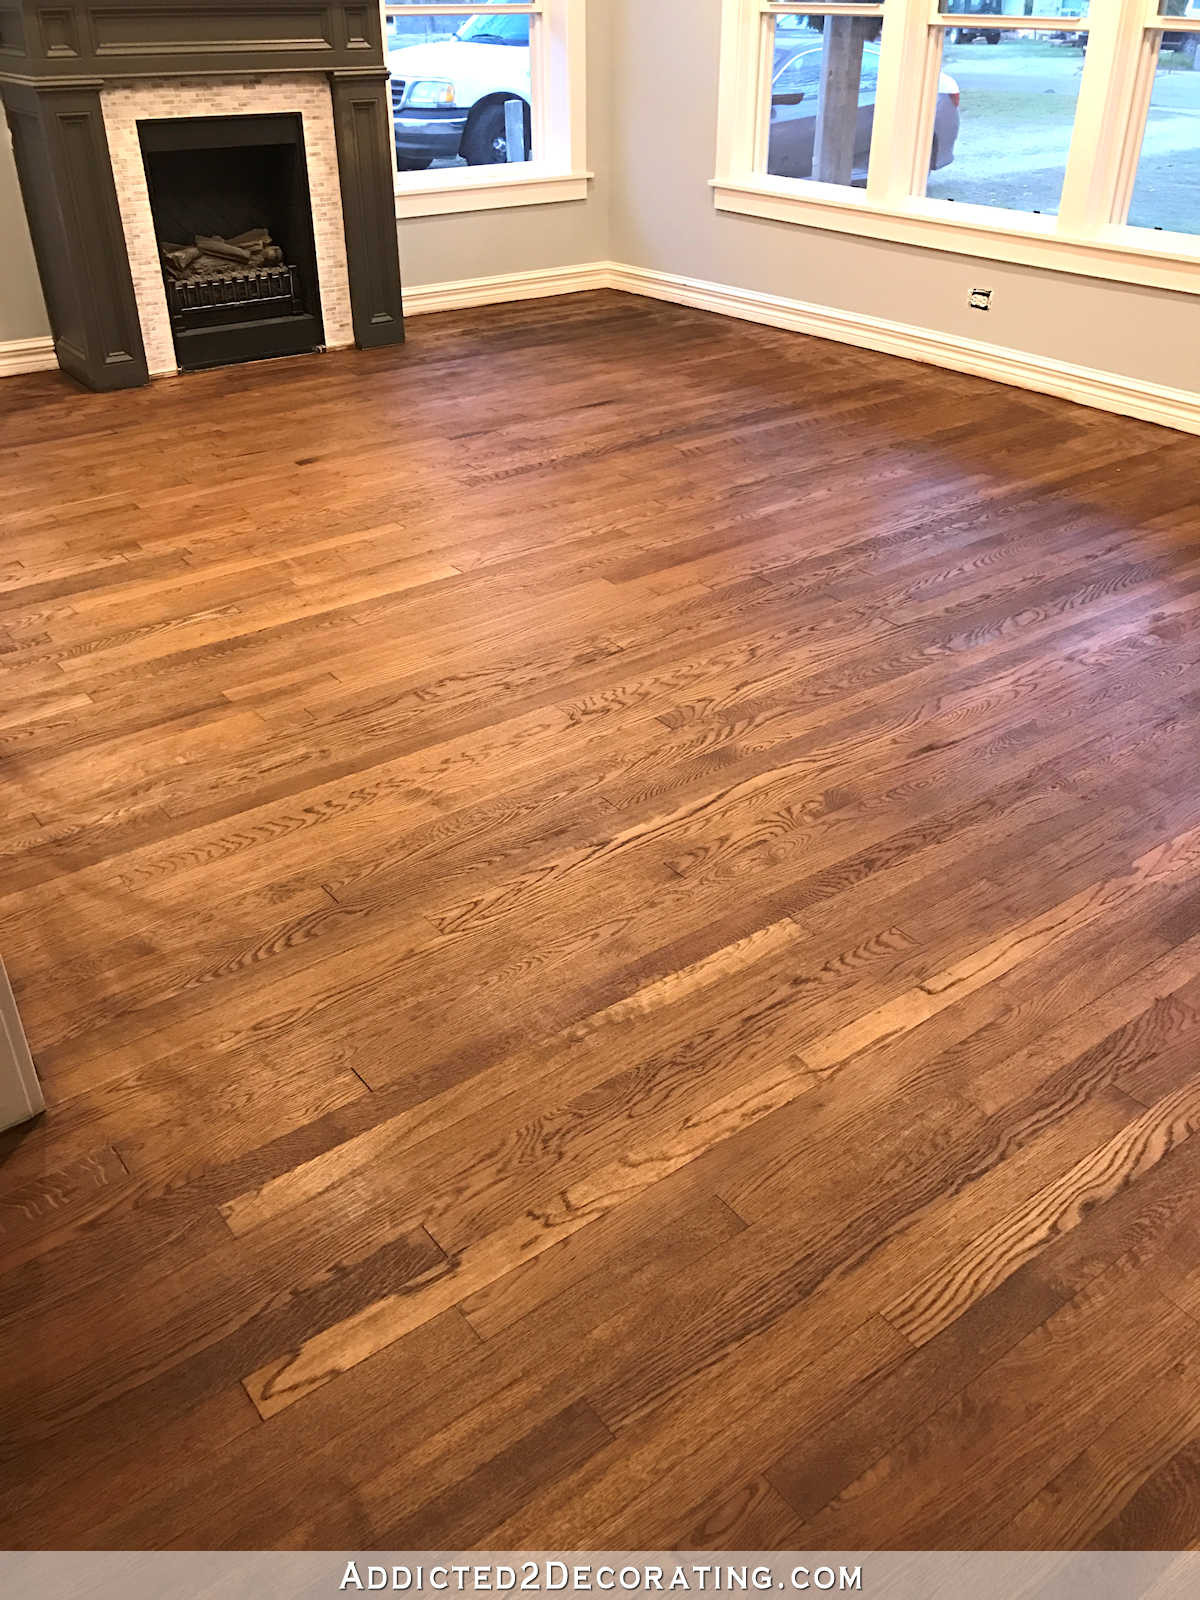 hardwood floor stain colors home depot of adventures in staining my red oak hardwood floors products process throughout staining red oak hardwood floors 8a living room and entryway